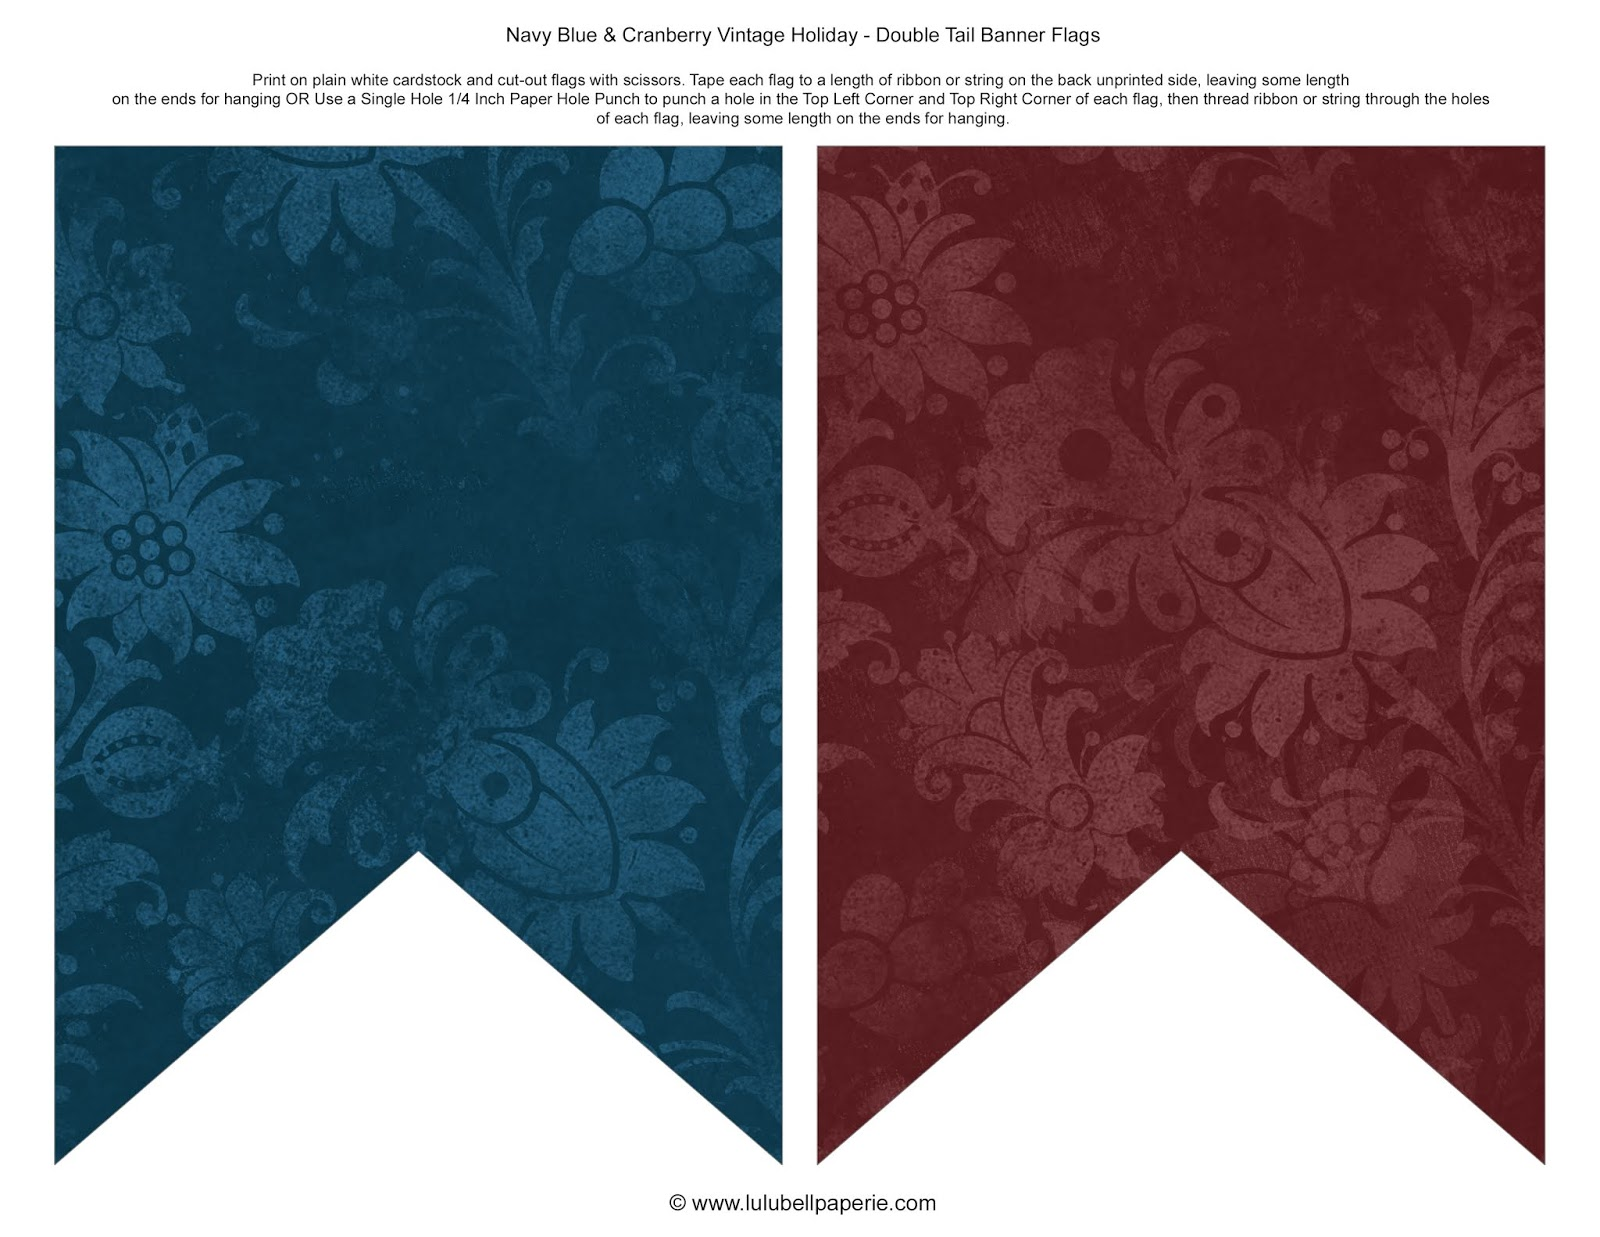 Free Christmas Holiday Bunting Banner Sheet Printable - Navy Blue & Burgundy Pattern